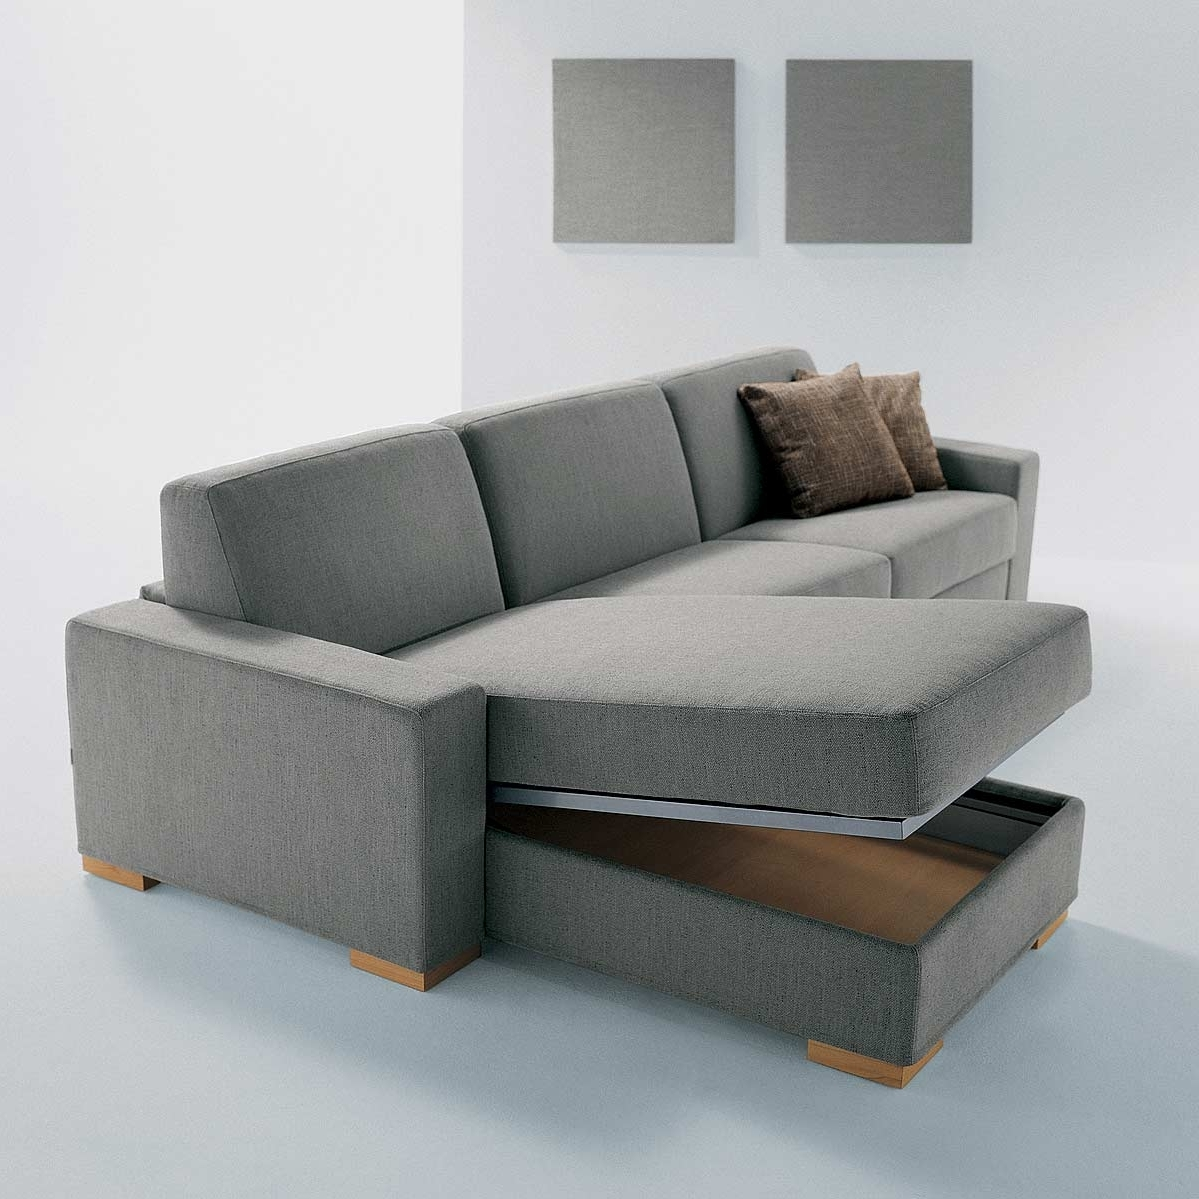 Widely Used Furniture : Sofa With Drawers Fabric Sectional Sofas With Chaise In Sectional Sofas With Storage (View 19 of 20)